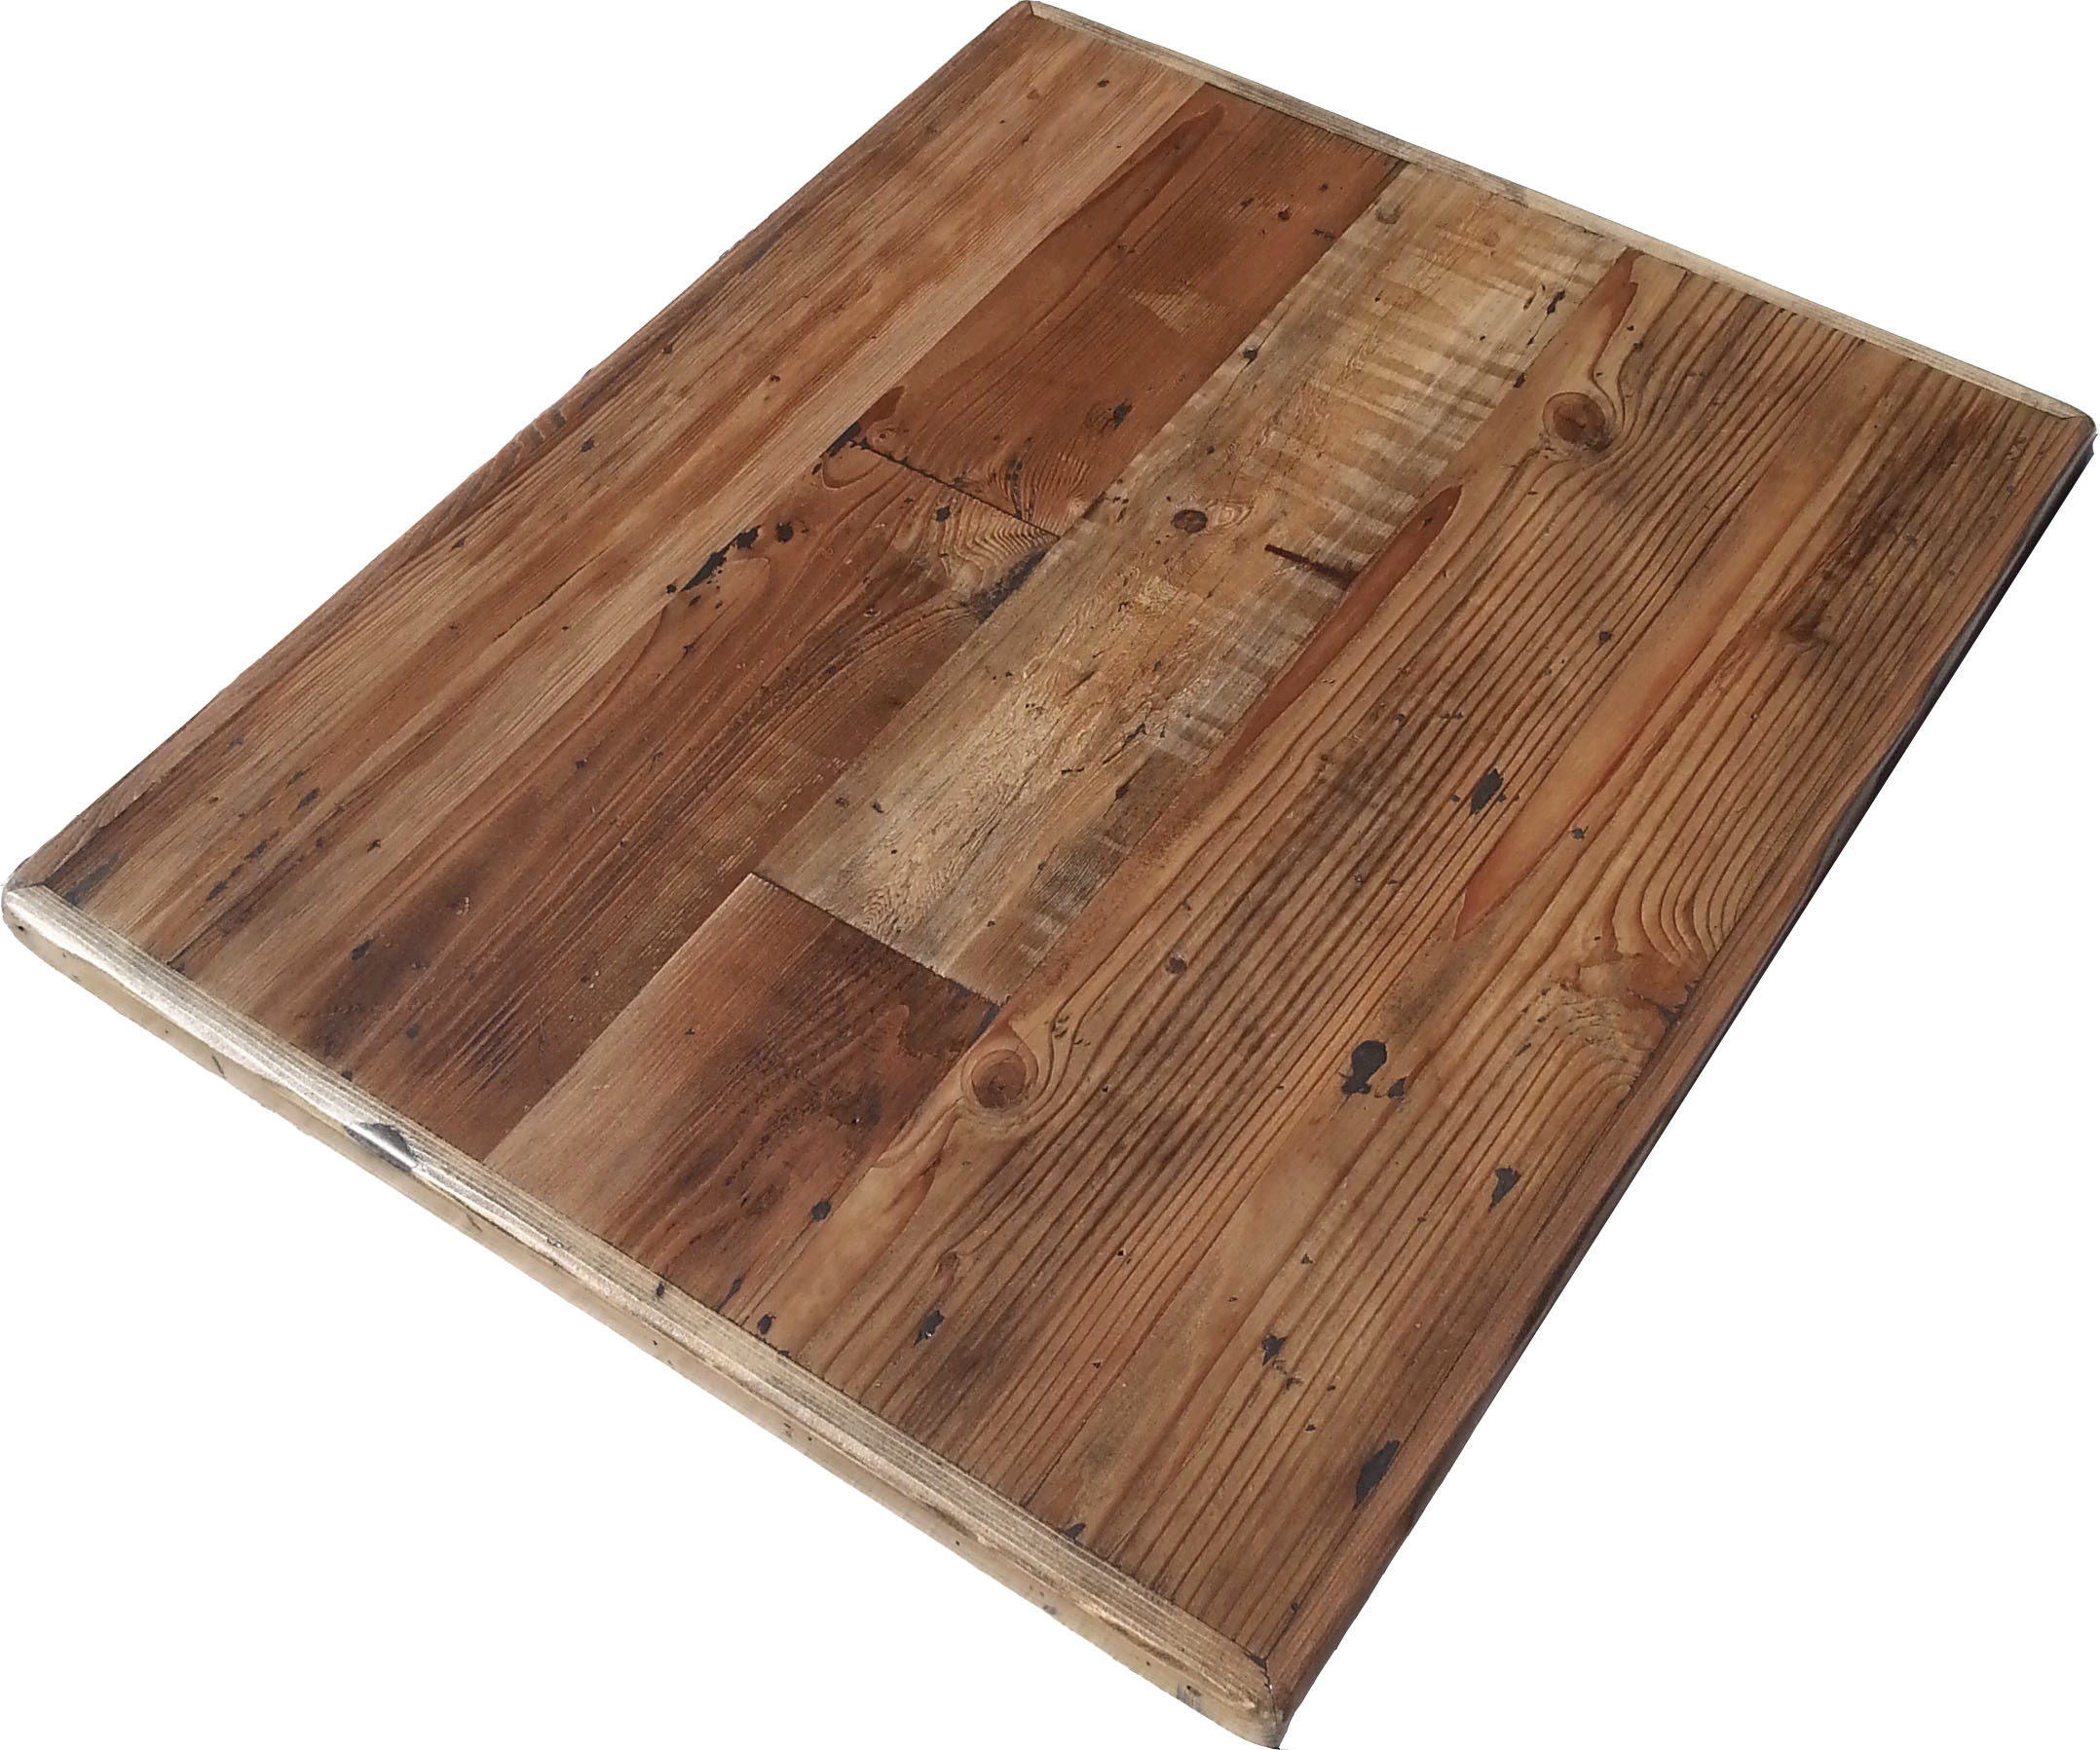 reclaimed doug fir tabletop